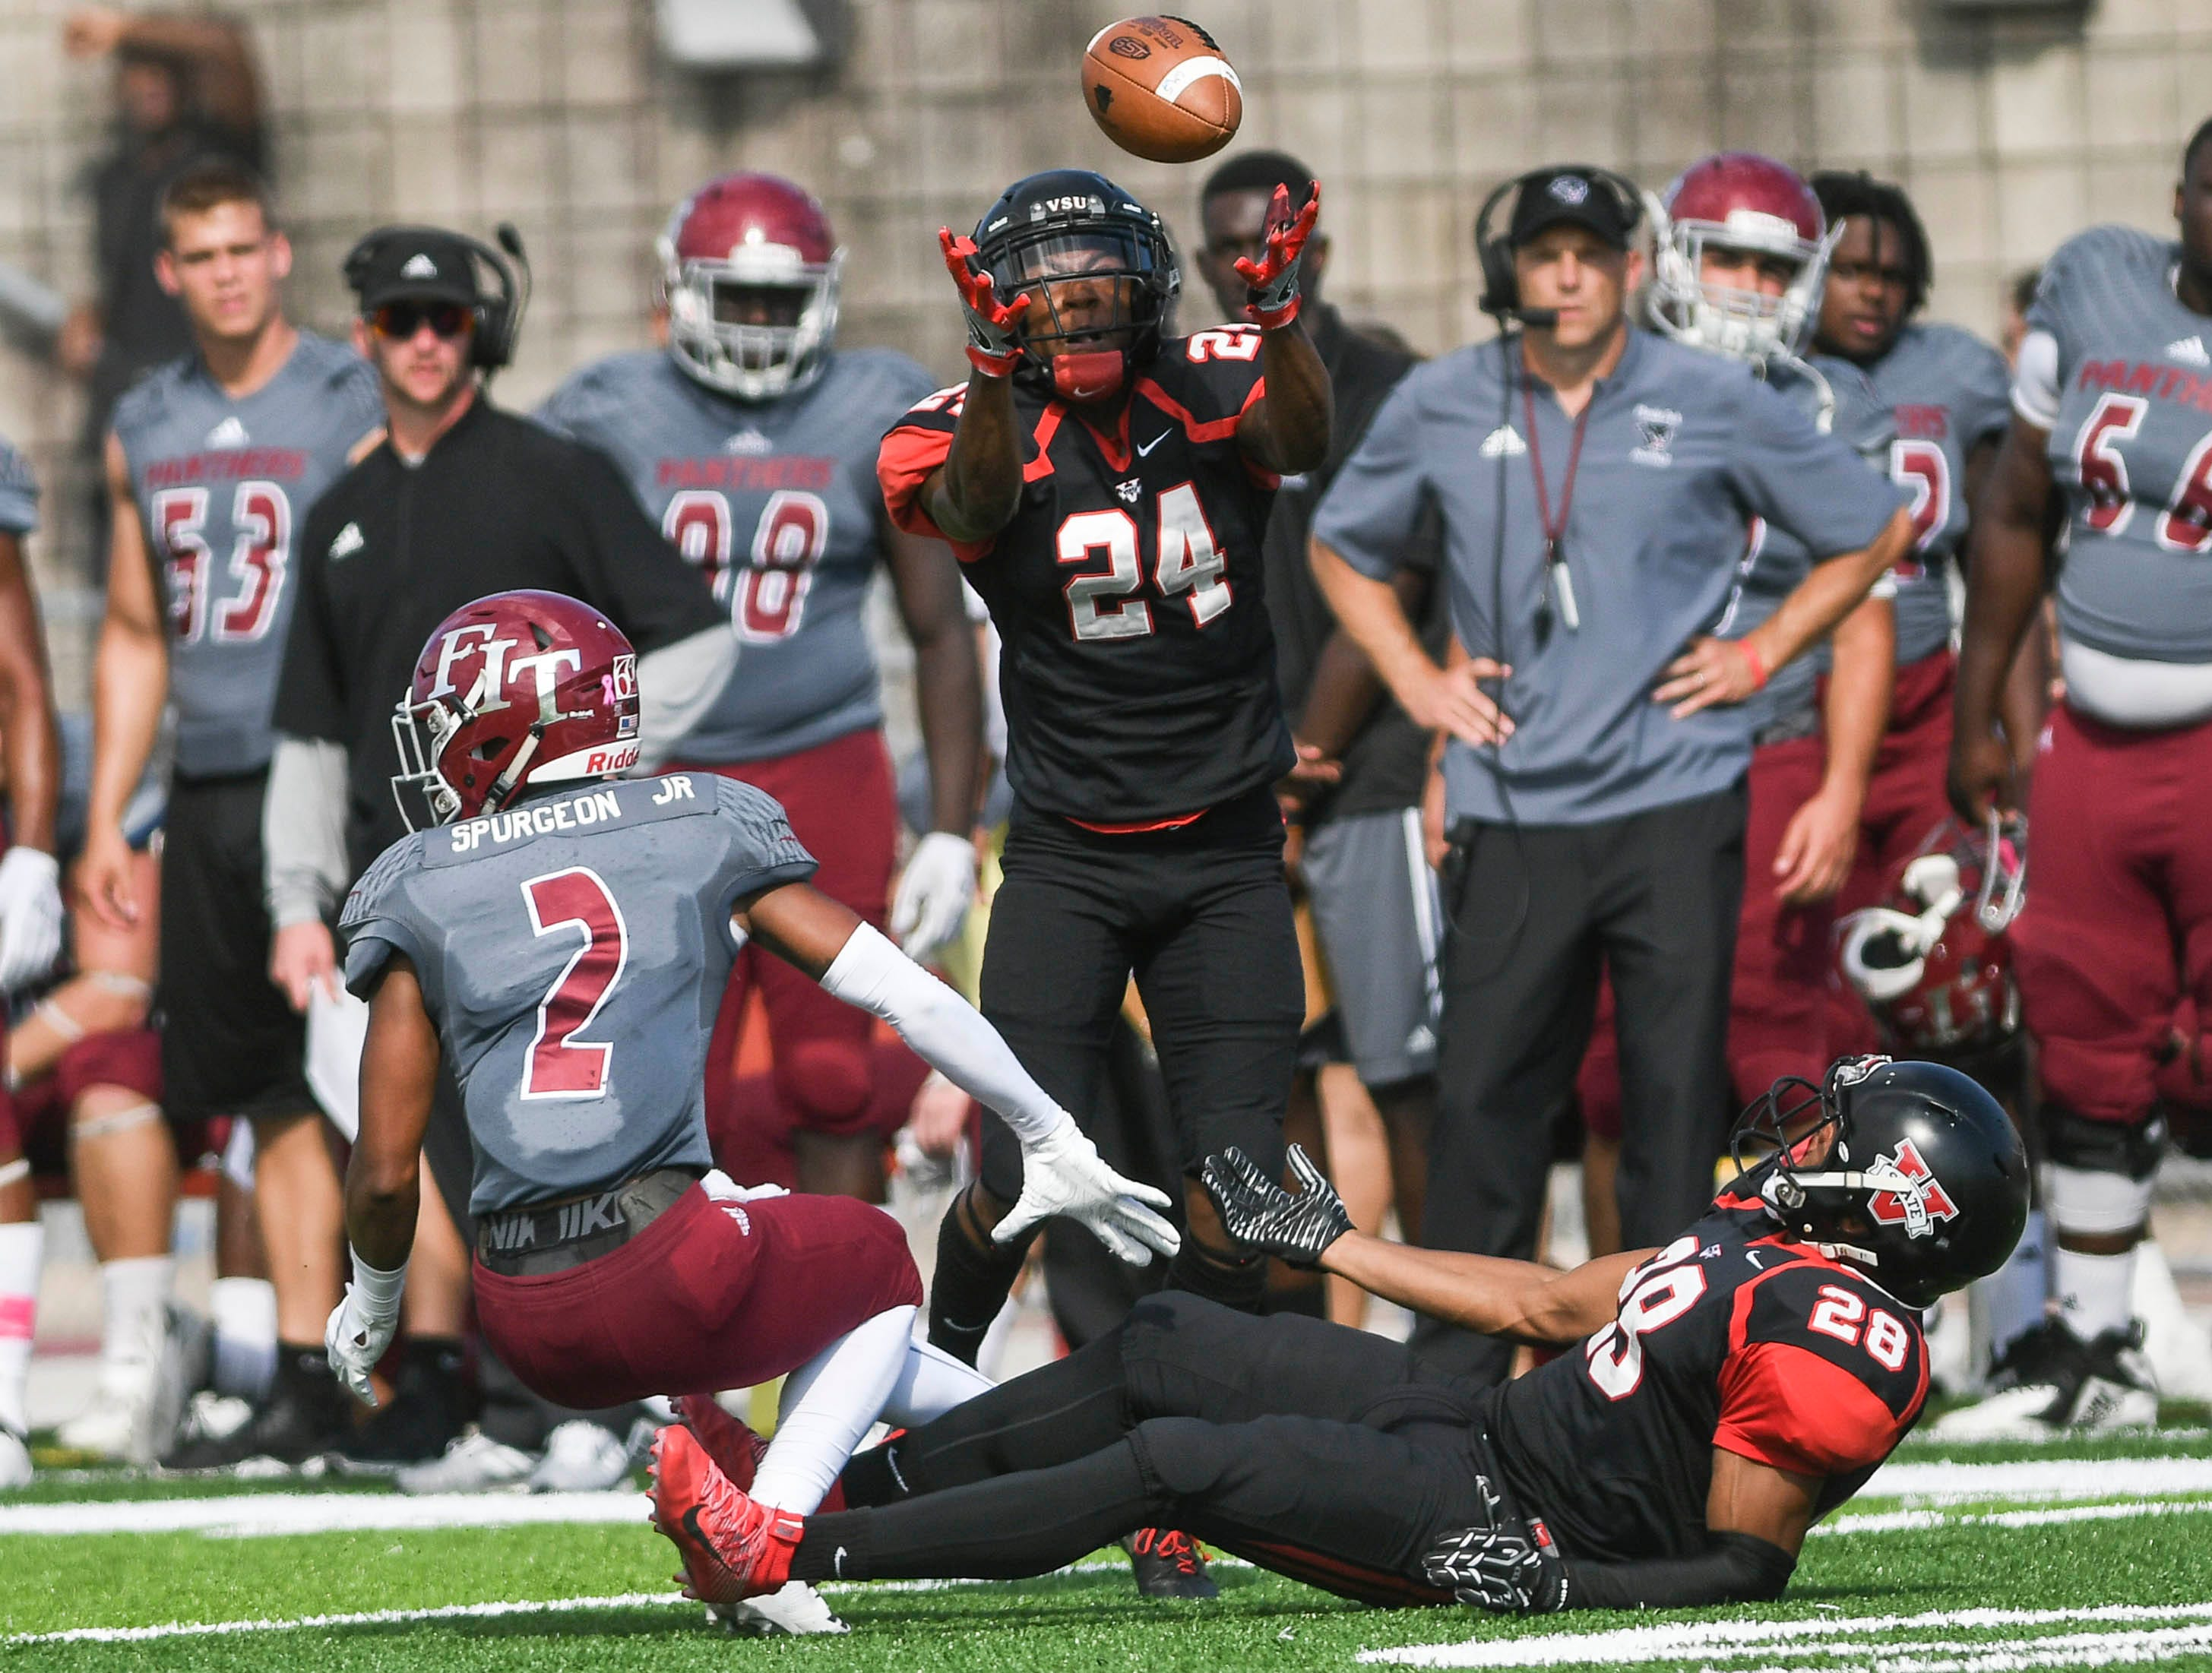 Alex Brown of Valdosta State (24) intercepts a pass intended for Brian Spurgeon (2) of Florida Tech during Saturday's game. Also defending for Valdosta State is Raymond Palmer (28).